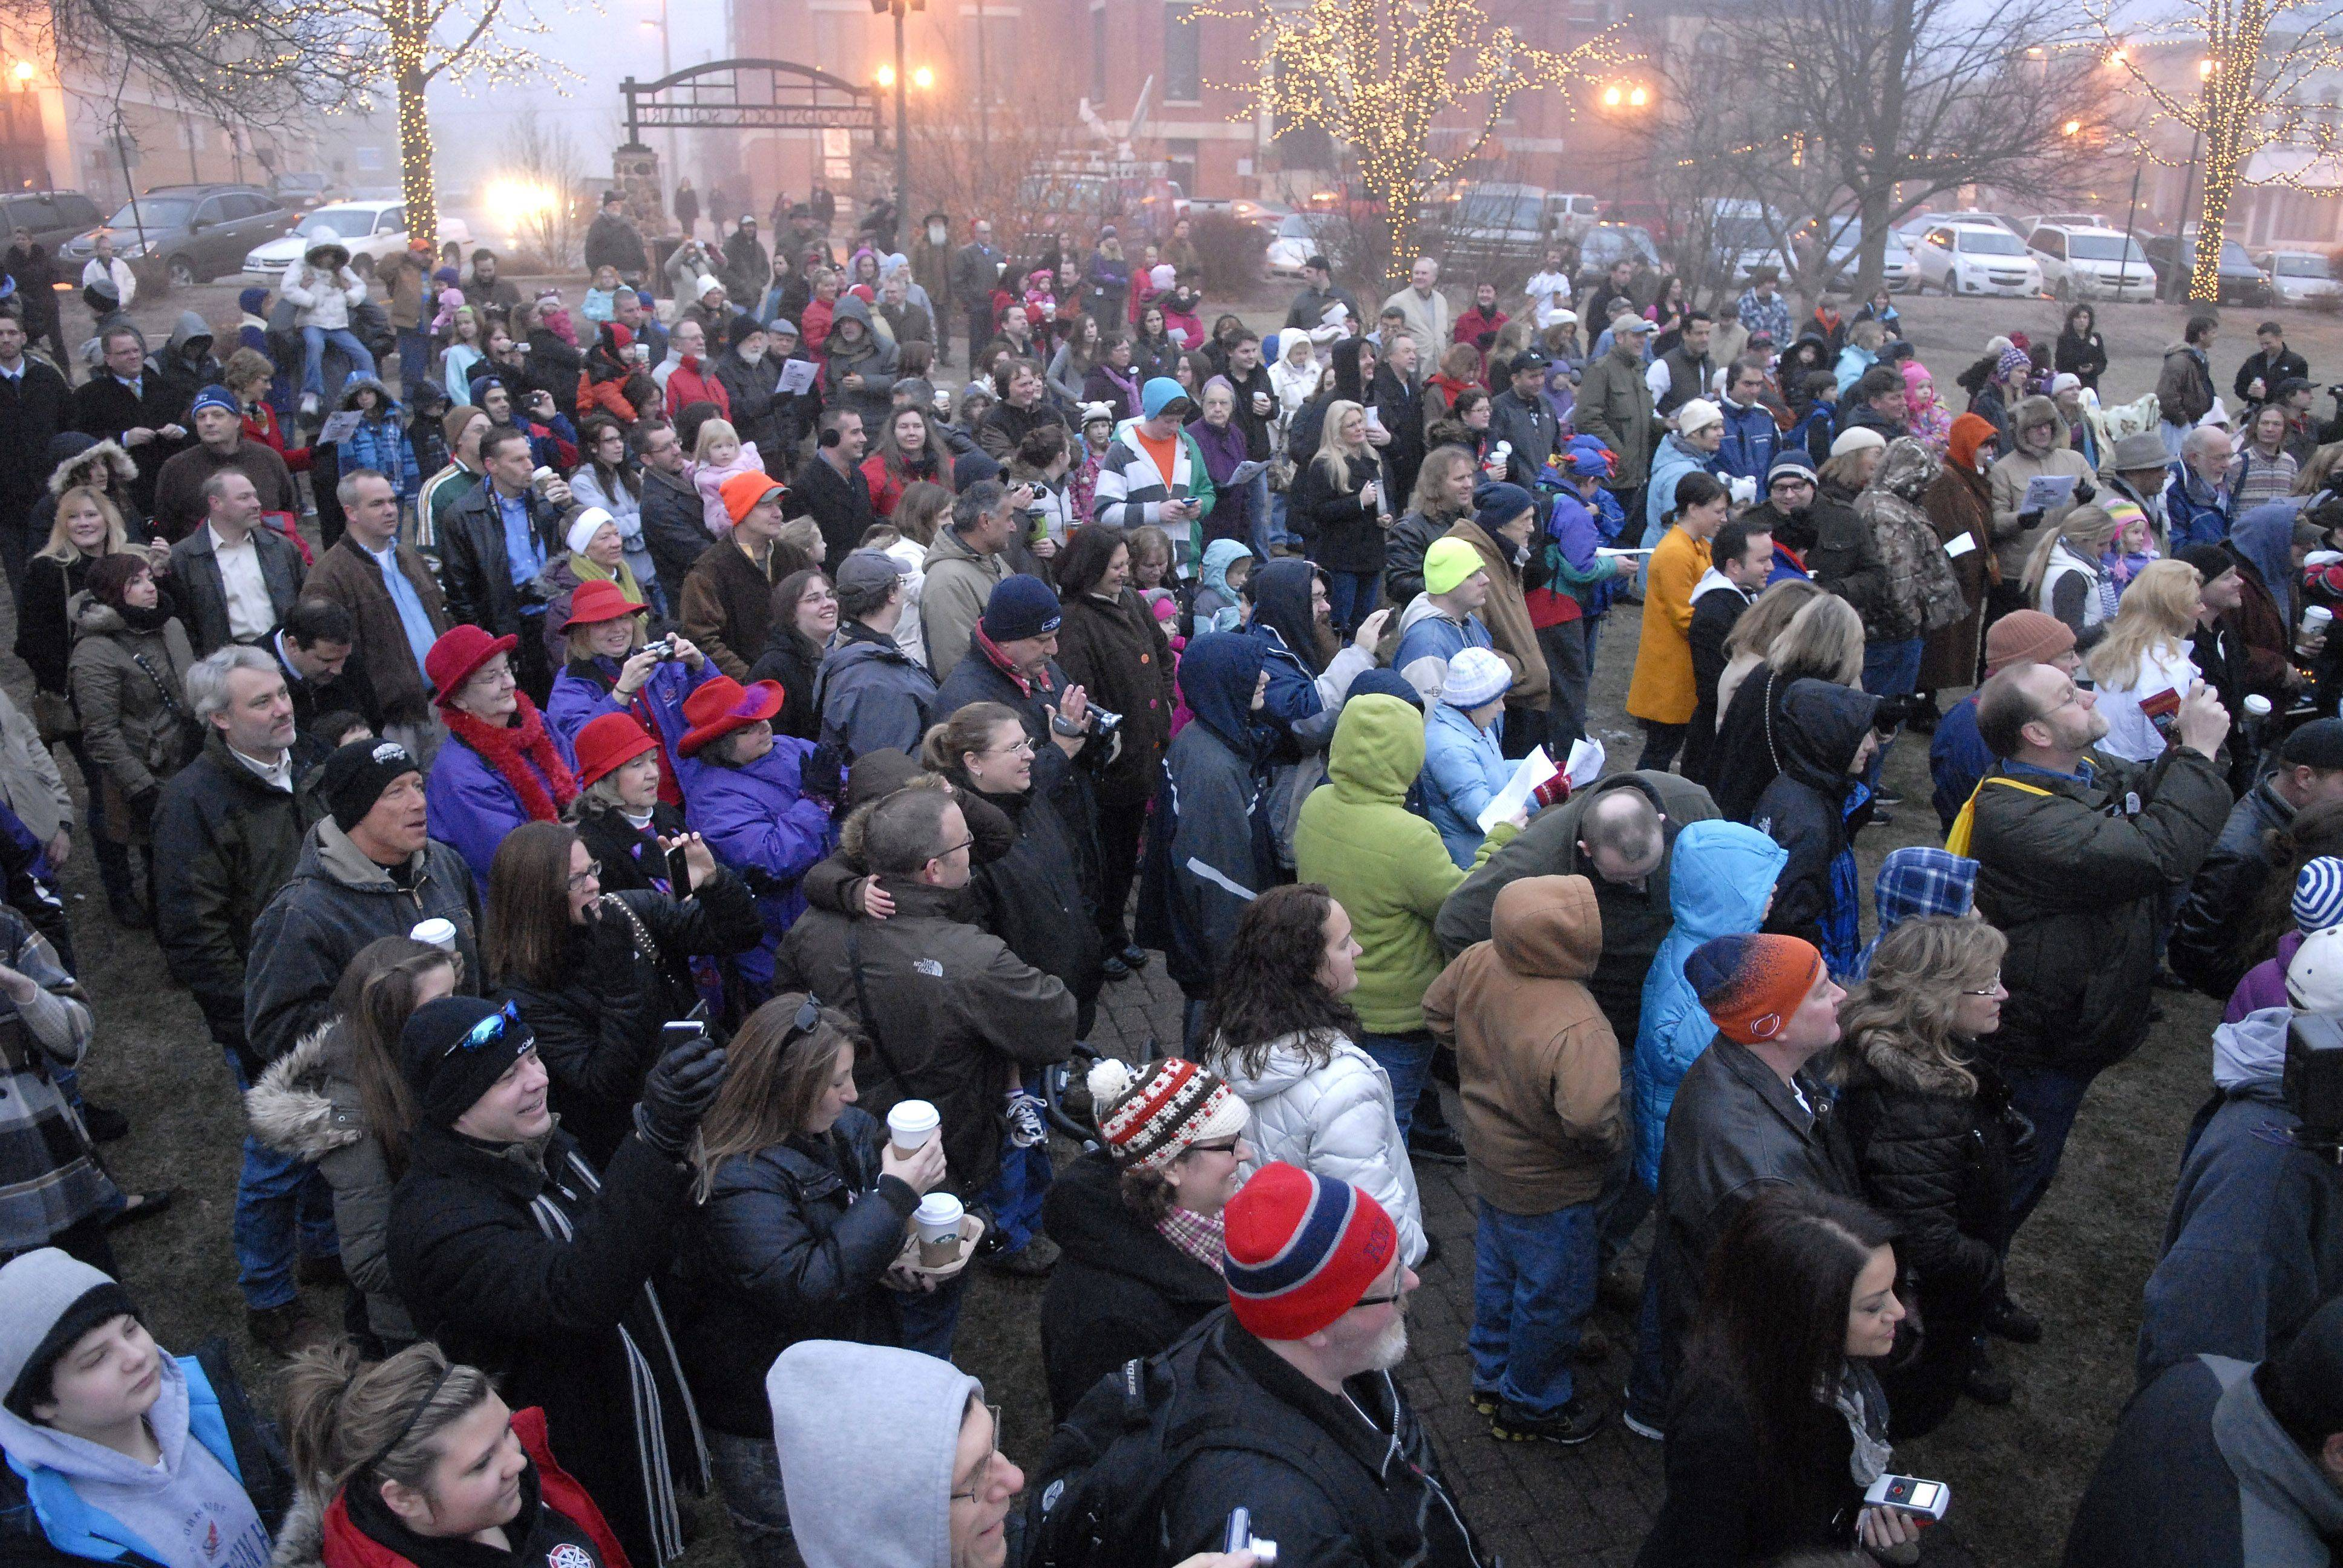 The annual Groundhog Day extravaganza drew a crowd of about 500 to the Woodstock Square. Organizers said it was the biggest crowd ever.